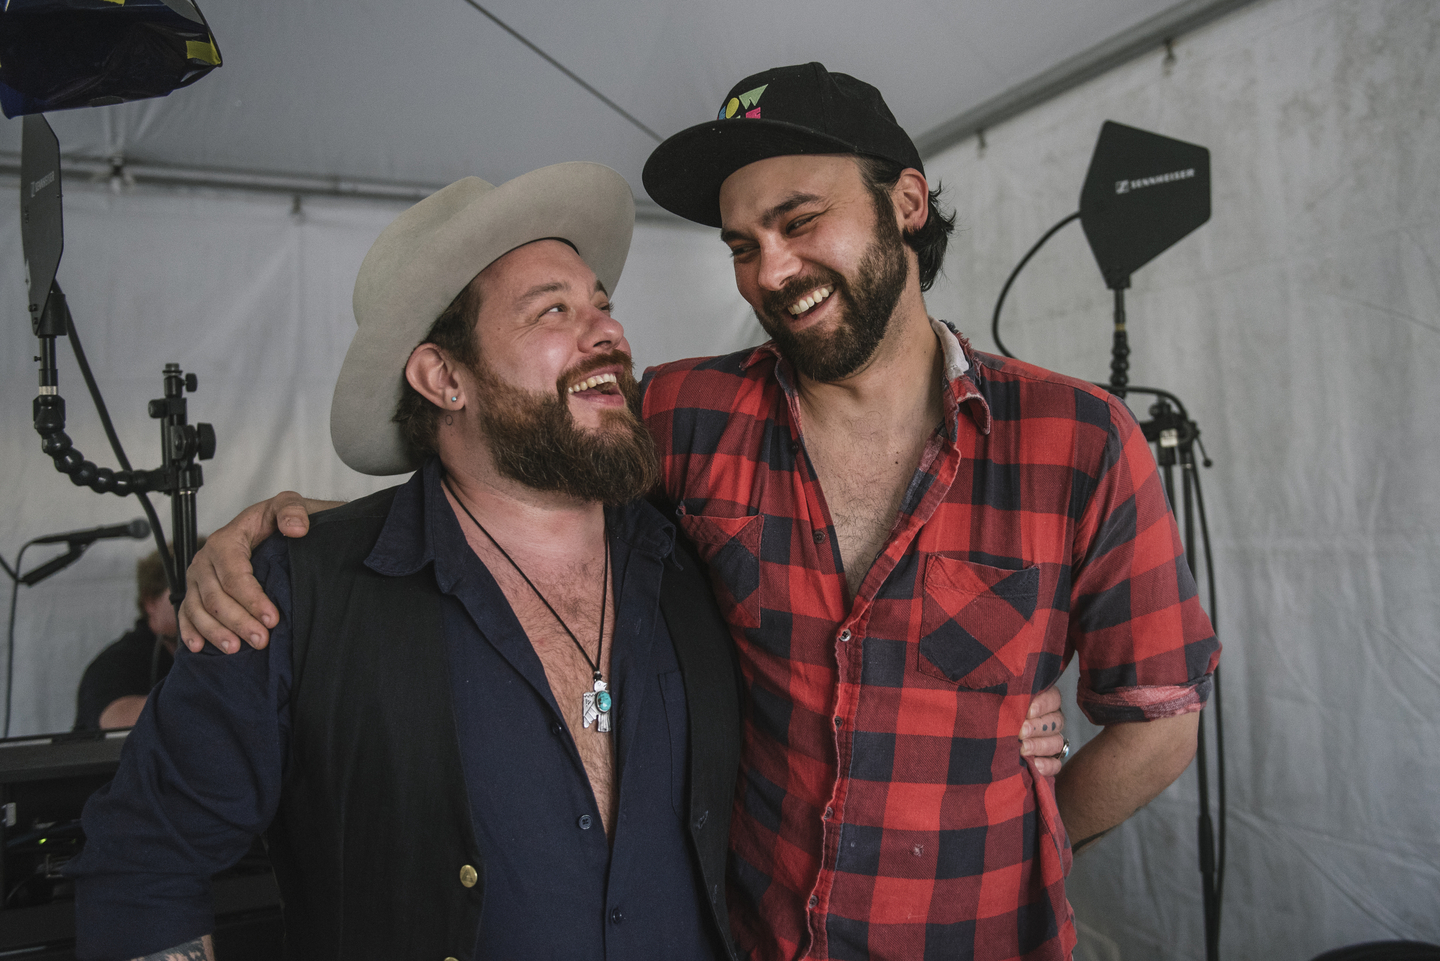 Nathaniel Rateliff and Shakey Graves, 2018. Photo by Merrick Ales